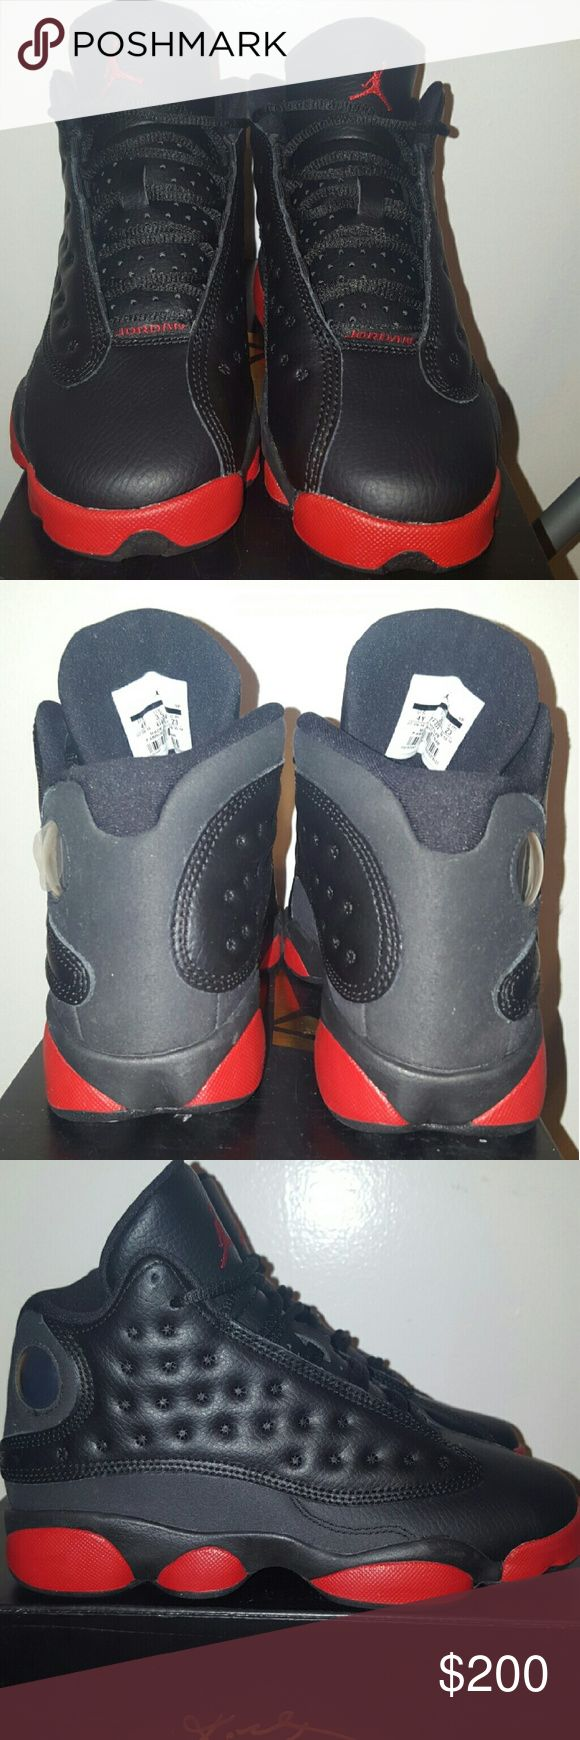 Air Jordan 13 Dirty Bred Black & Red Air Jordan 13  Size 4Y  Colorway: Black/Gym Red  Release Date: December 2014   Style #: 414571-003  Brand new with original box but it is missing the top so it will also come with a brand new replacement Kobe Bryant box as well.  100% Authentic   Super rare. Don't loose out on on these.   Any questions please feel free to ask. Jordan Shoes Sneakers